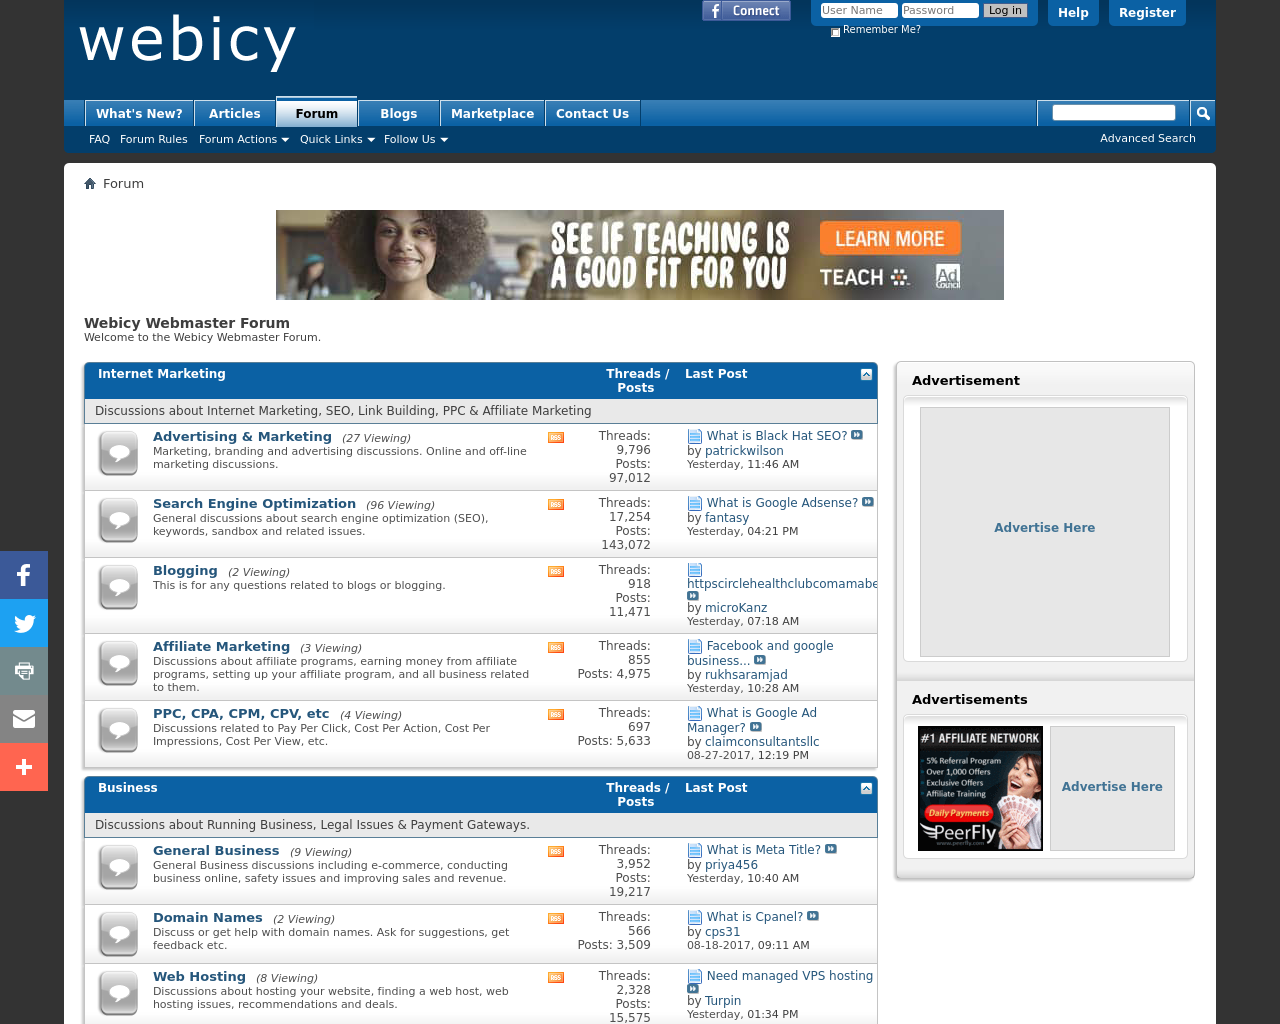 Webicy-Webmaster-Forum-Advertising-Reviews-Pricing